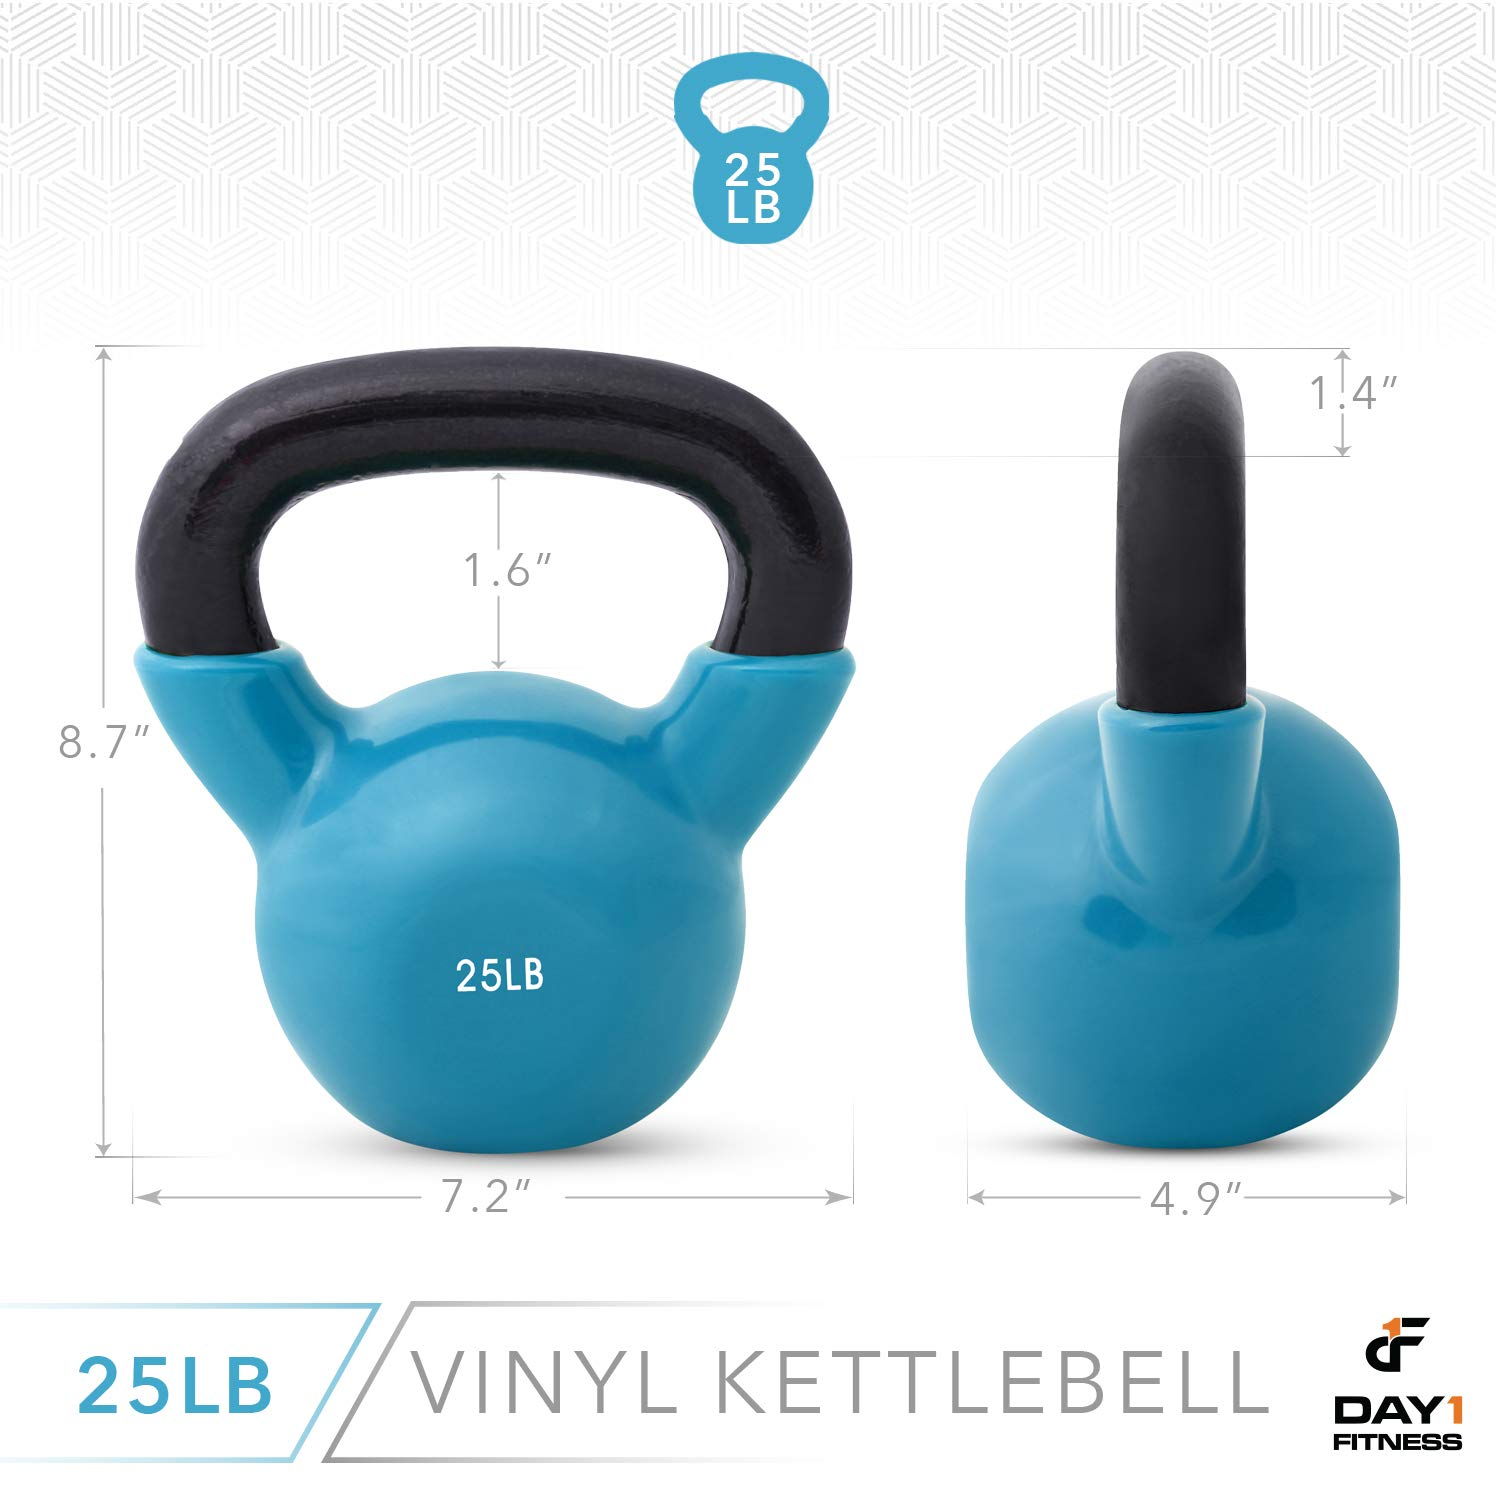 Day 1 Fitness Kettlebell Weights Vinyl Coated Iron 25 Pounds - Coated for Floor and Equipment Protection, Noise Reduction - Free Weights for Ballistic, Core, Weight Training by Day 1 Fitness (Image #3)